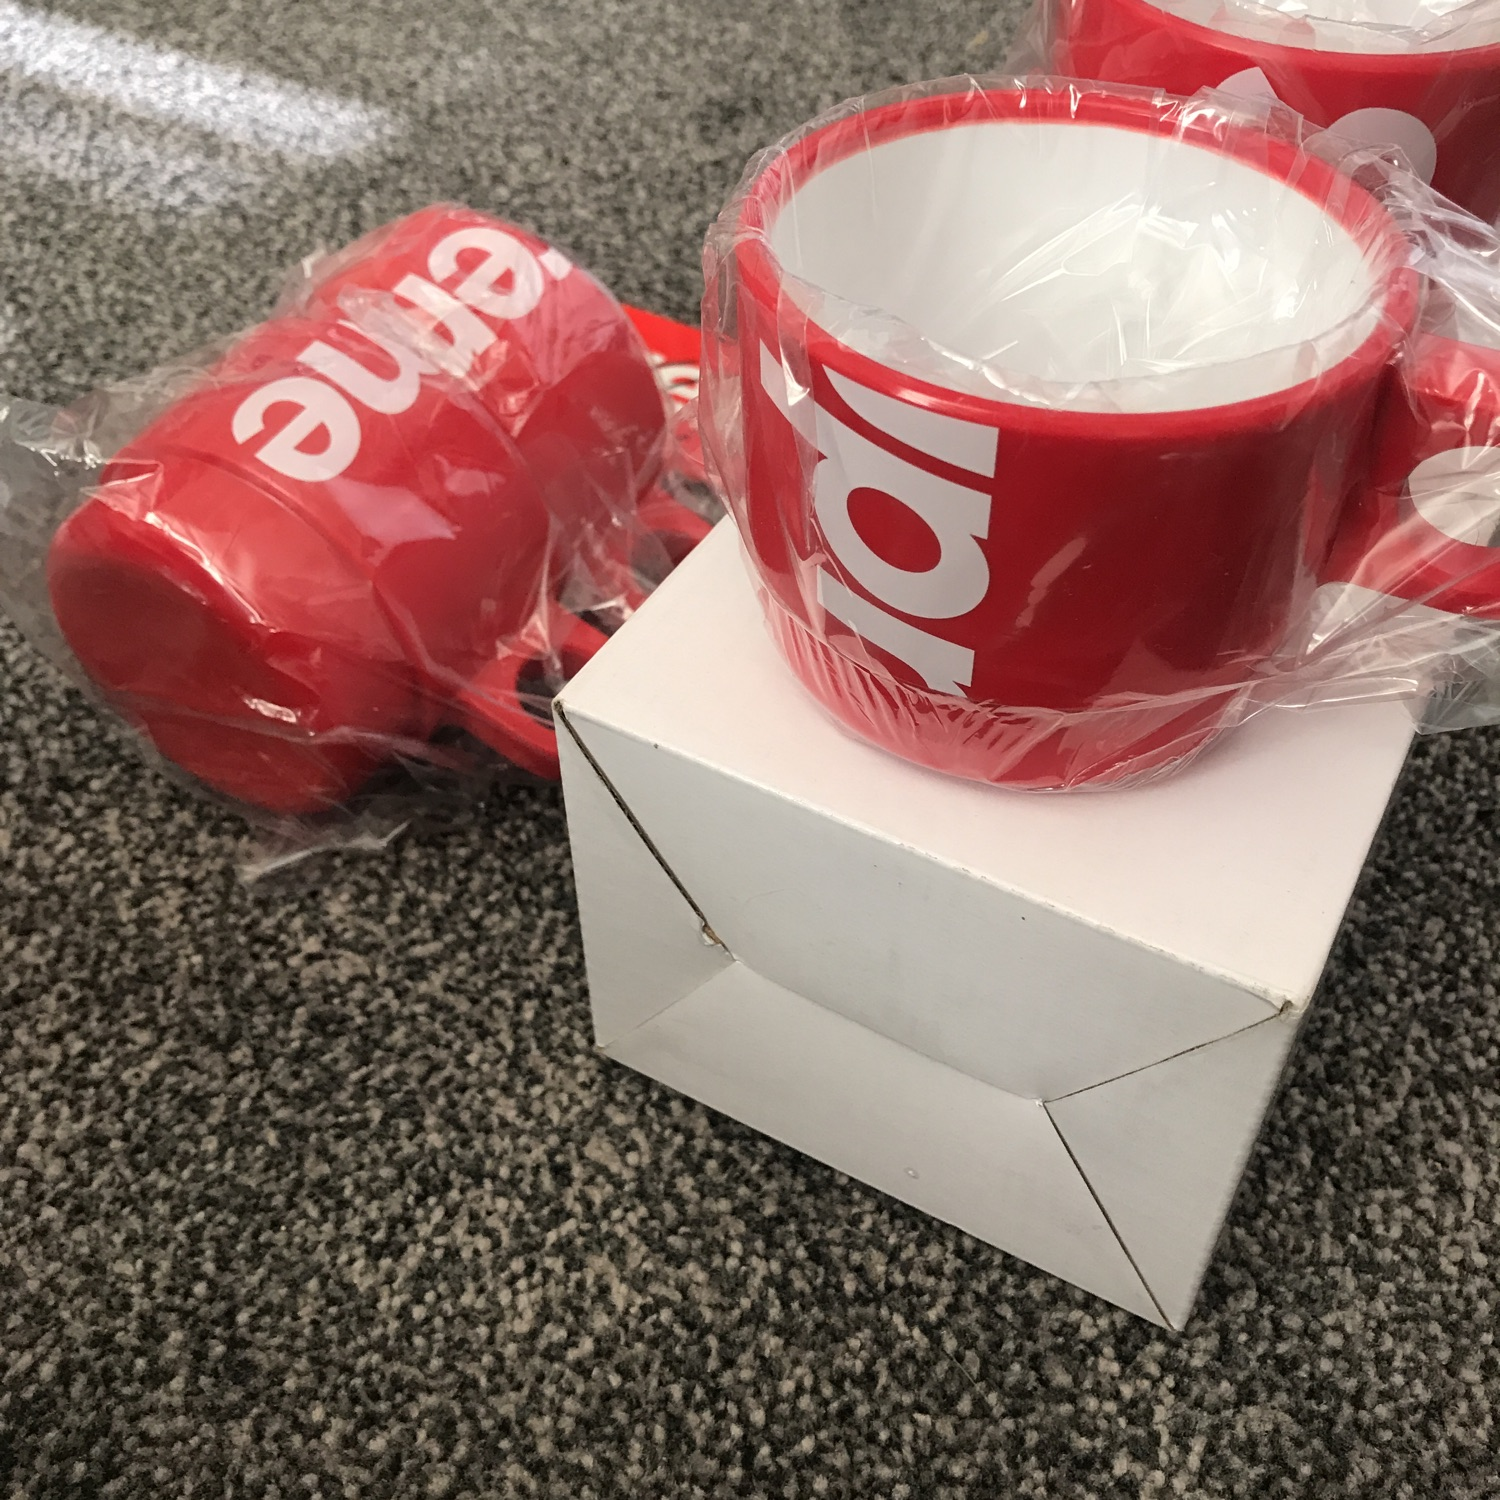 Supreme Stacking Cups - Ds In Box With Receipt